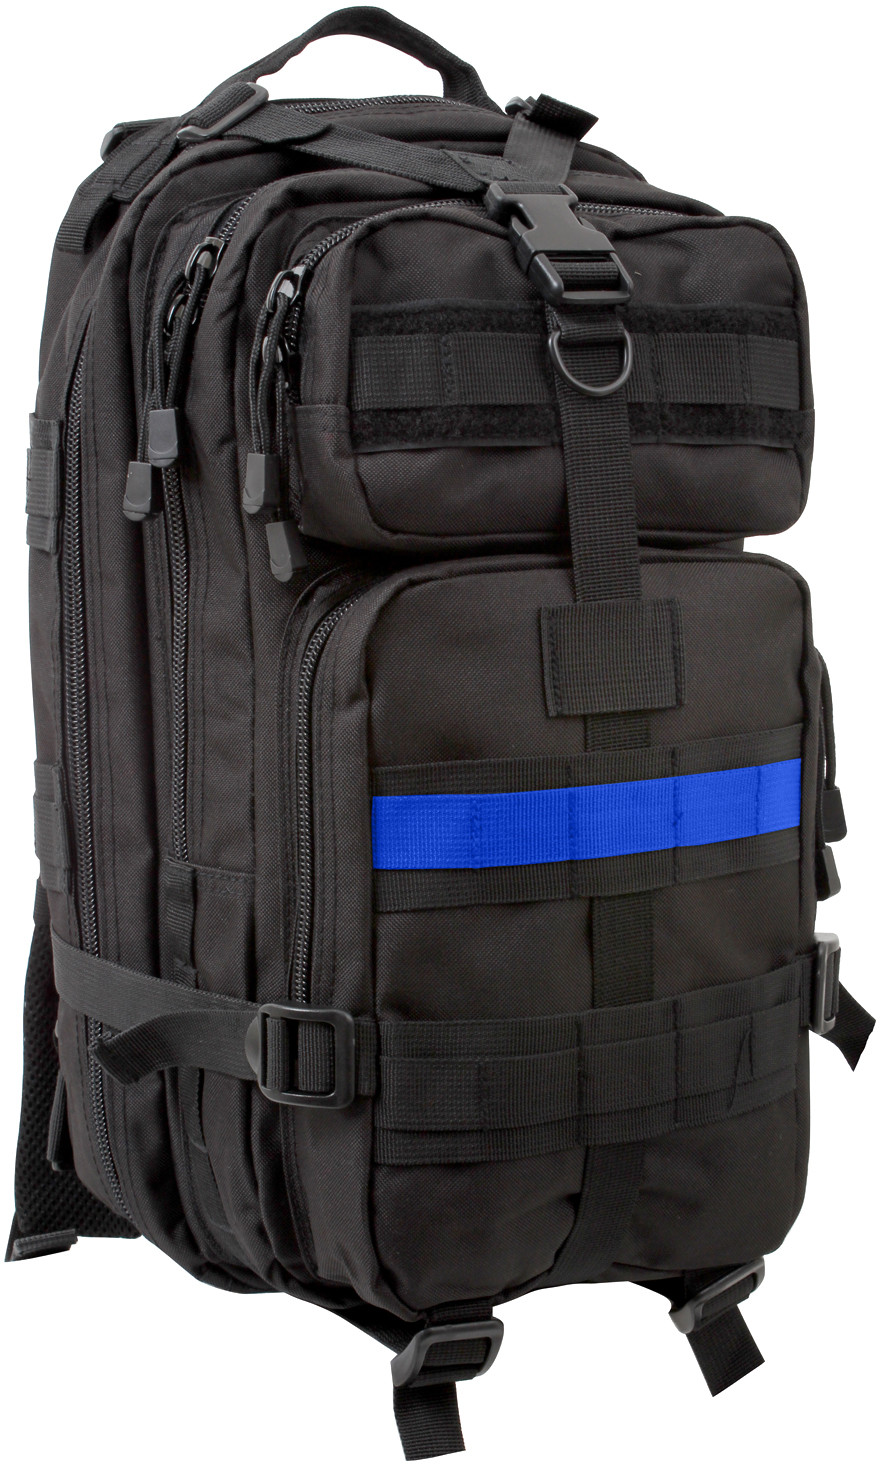 Black Support The Police Medium Transport Backpack w  Thin Blue Line 0ba2cf9d2a9